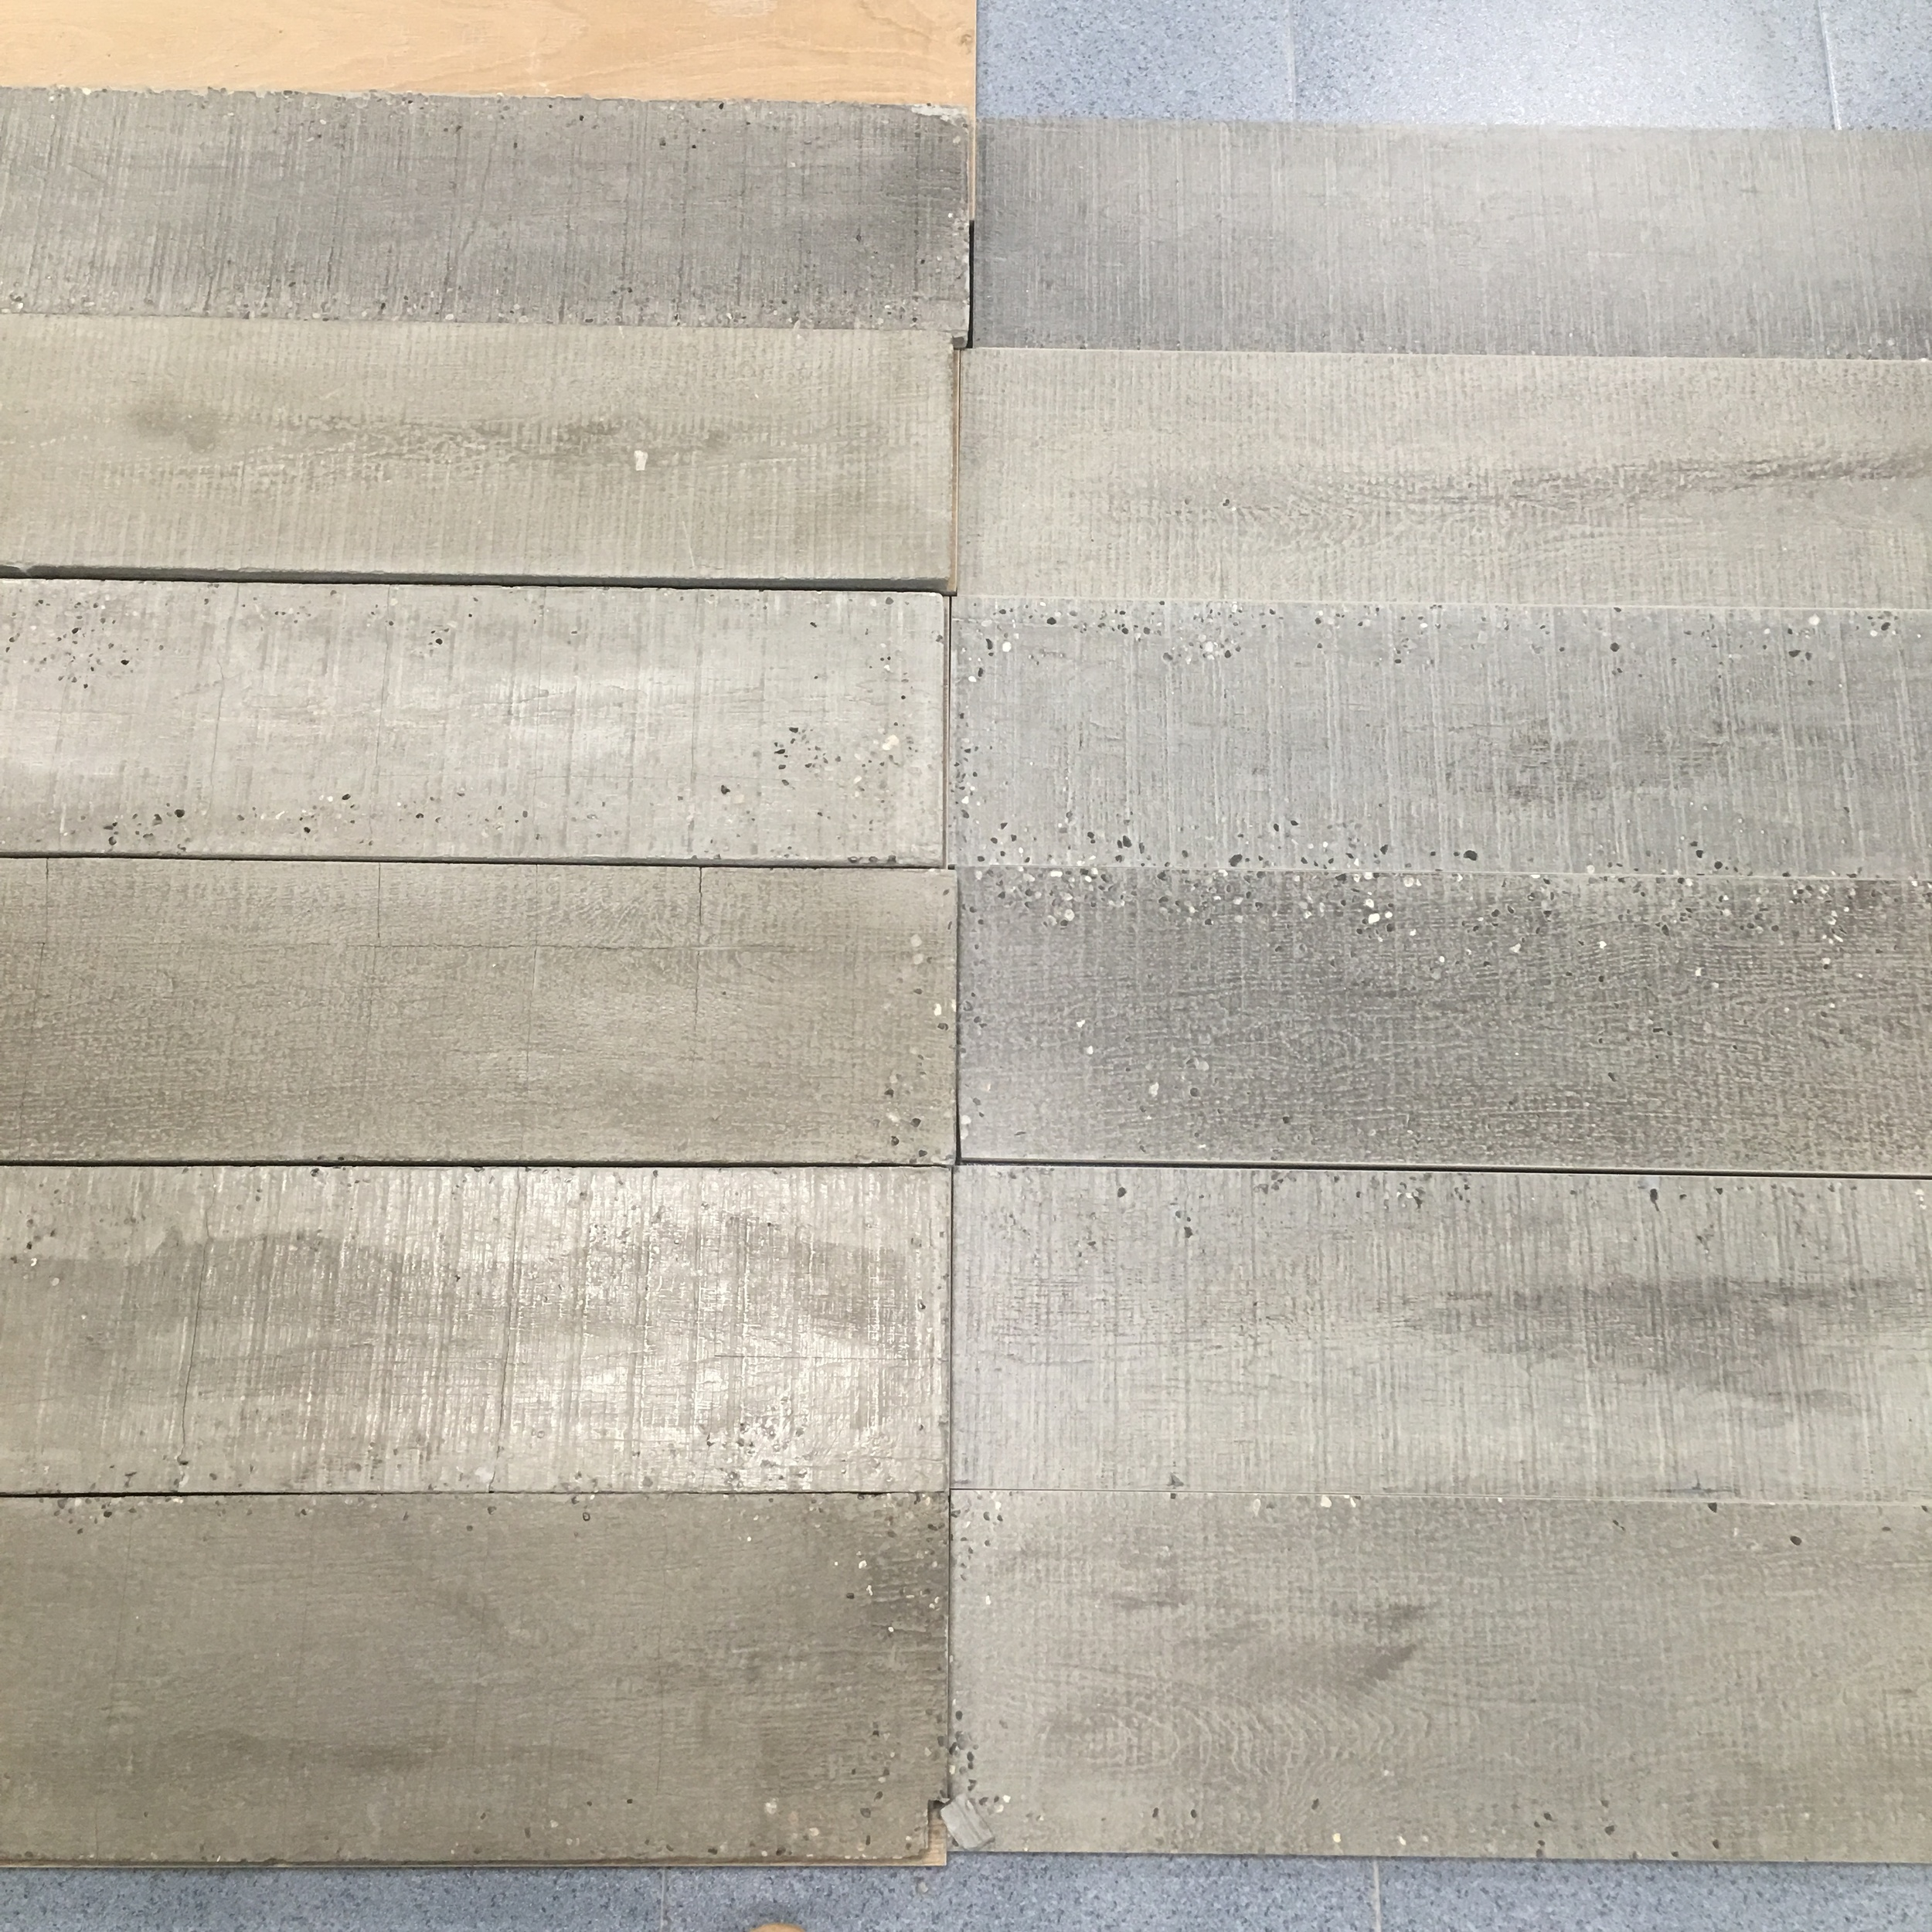 Comparing the timber boards and the wood effect tiles